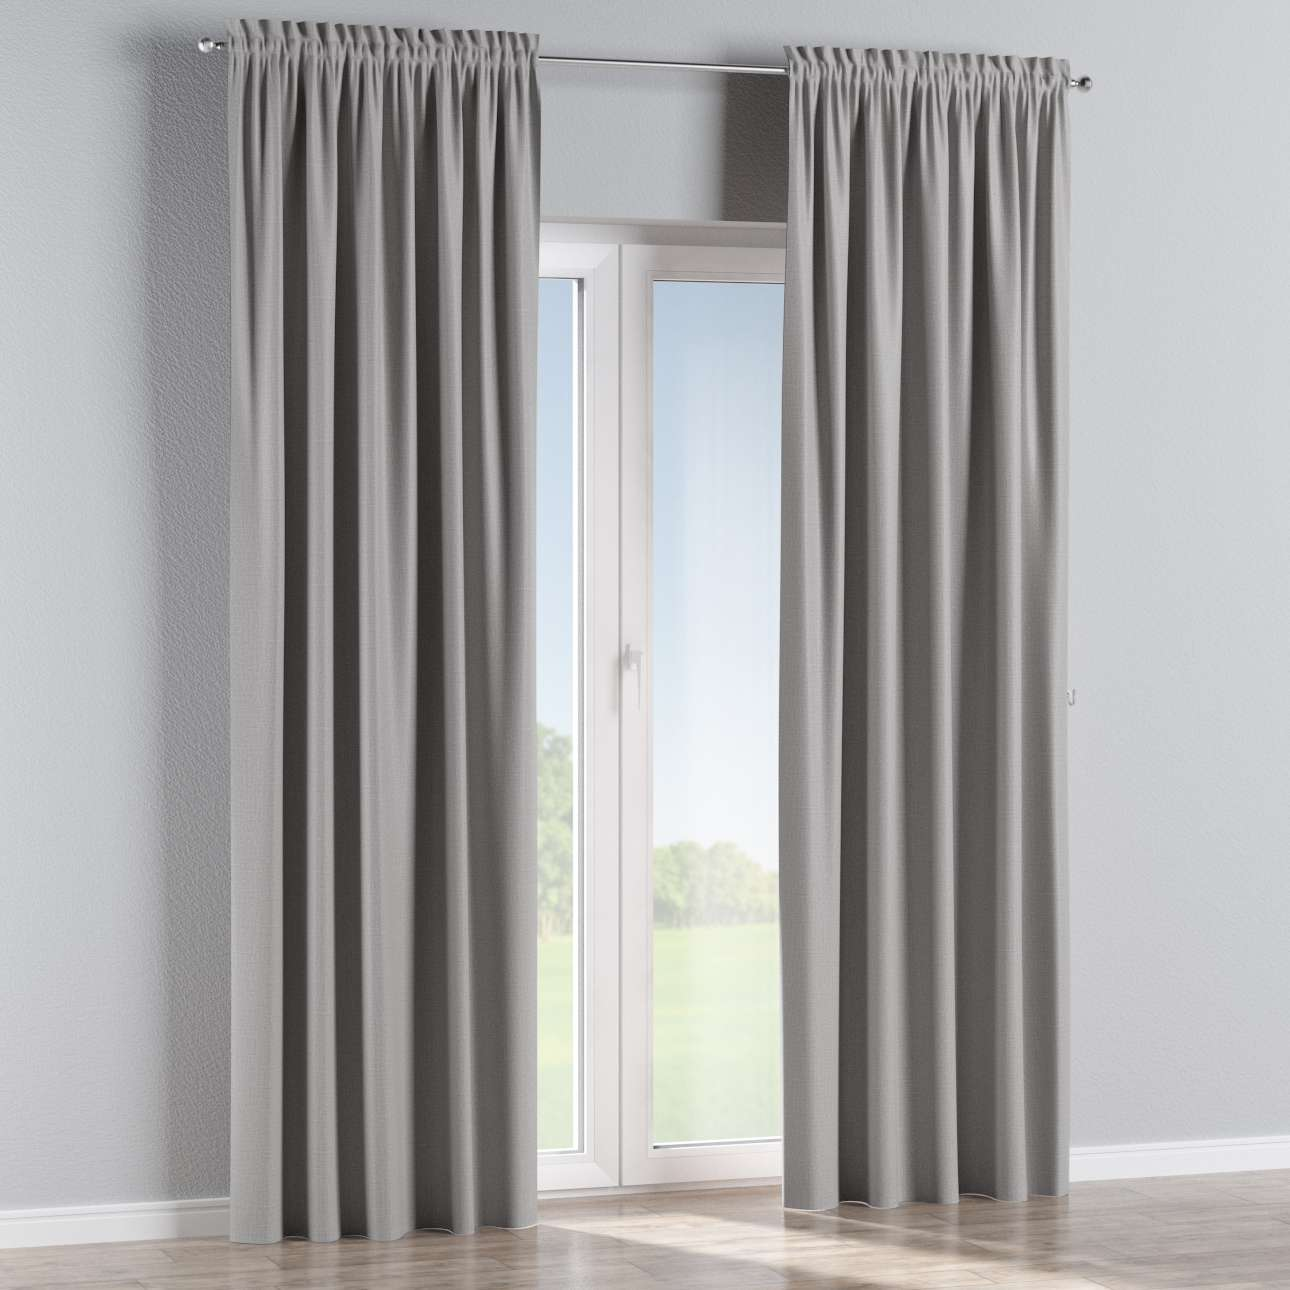 Blackout slot and frill curtains 140 x 260 cm (approx. 55 x 102 inch) in collection Blackout, fabric: 269-64